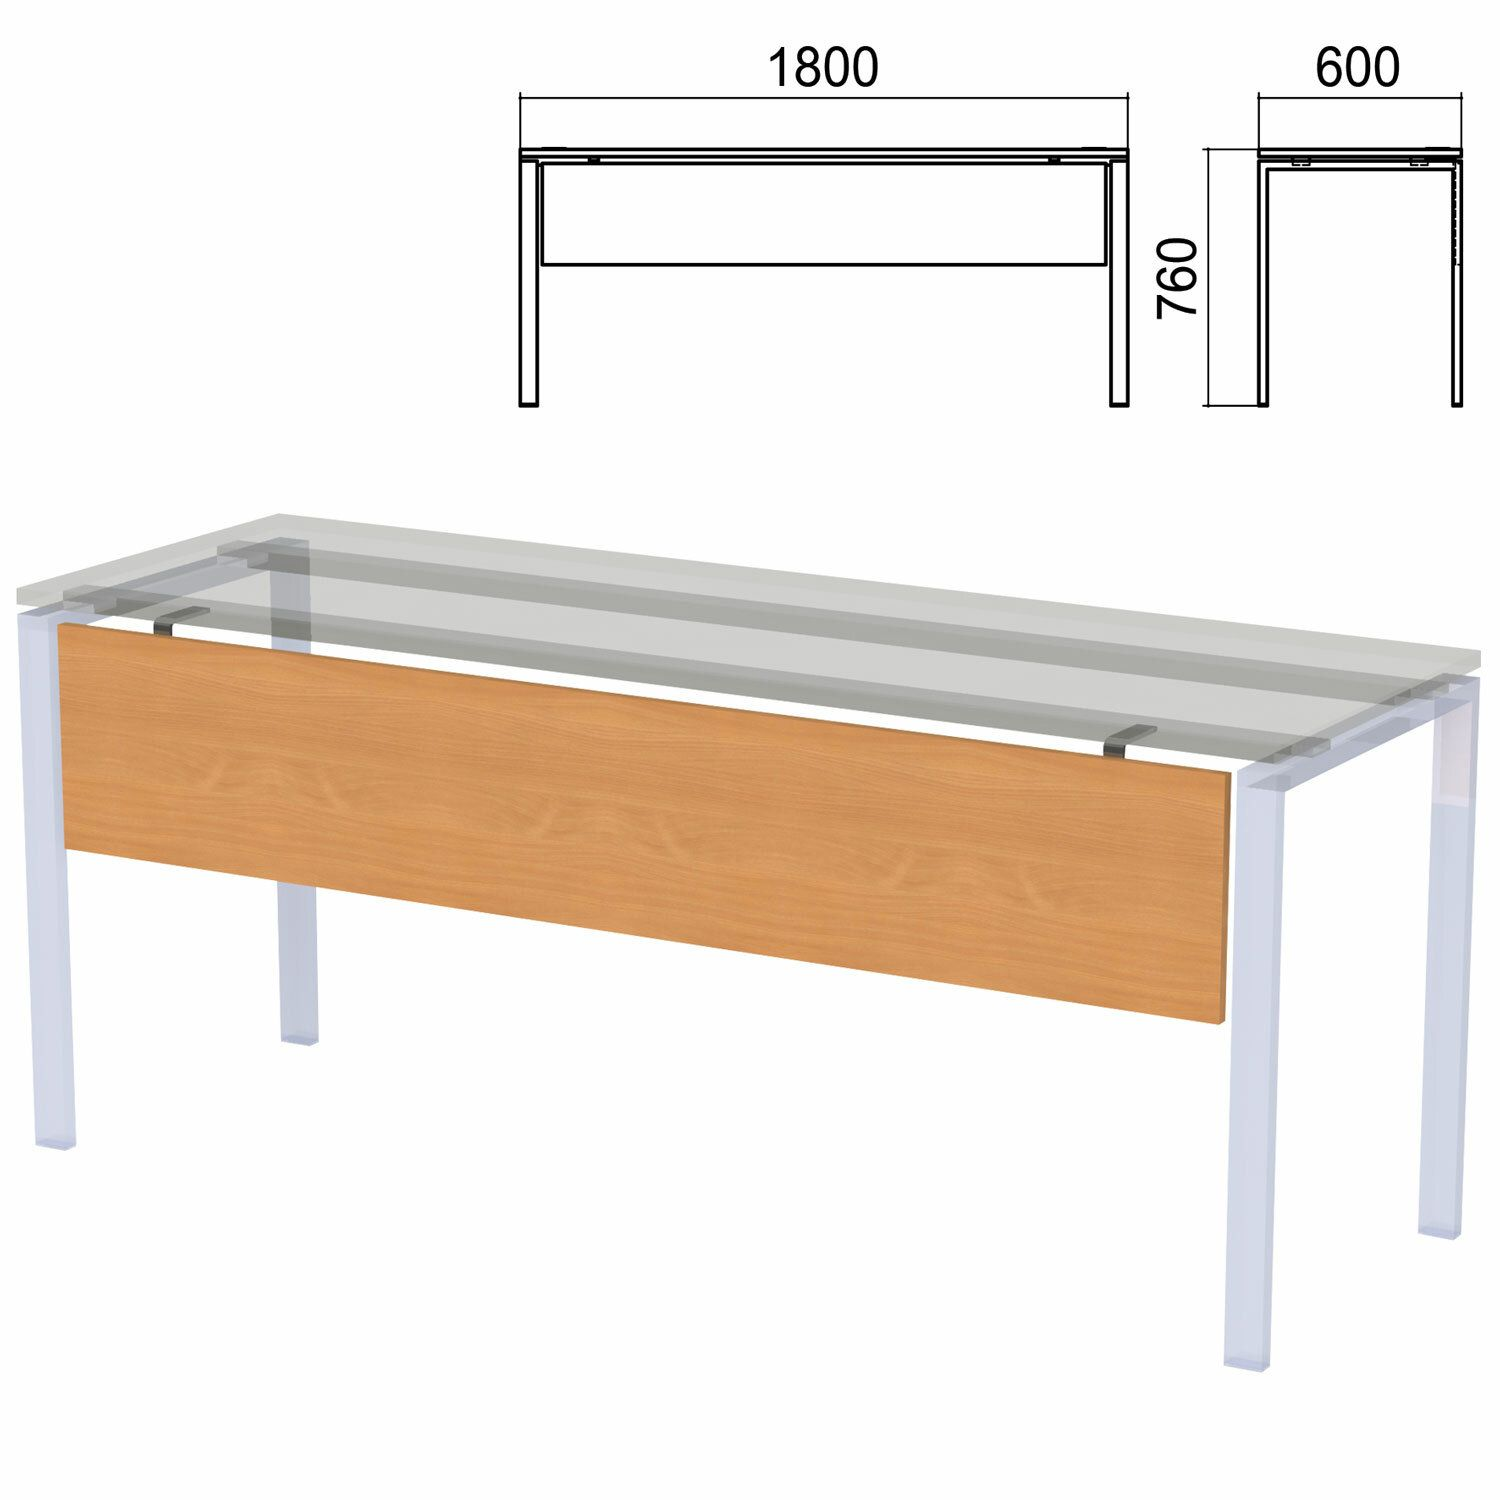 "Trestle for tables on metal frame ""Argo"", 1800 mm wide, aroso pear"